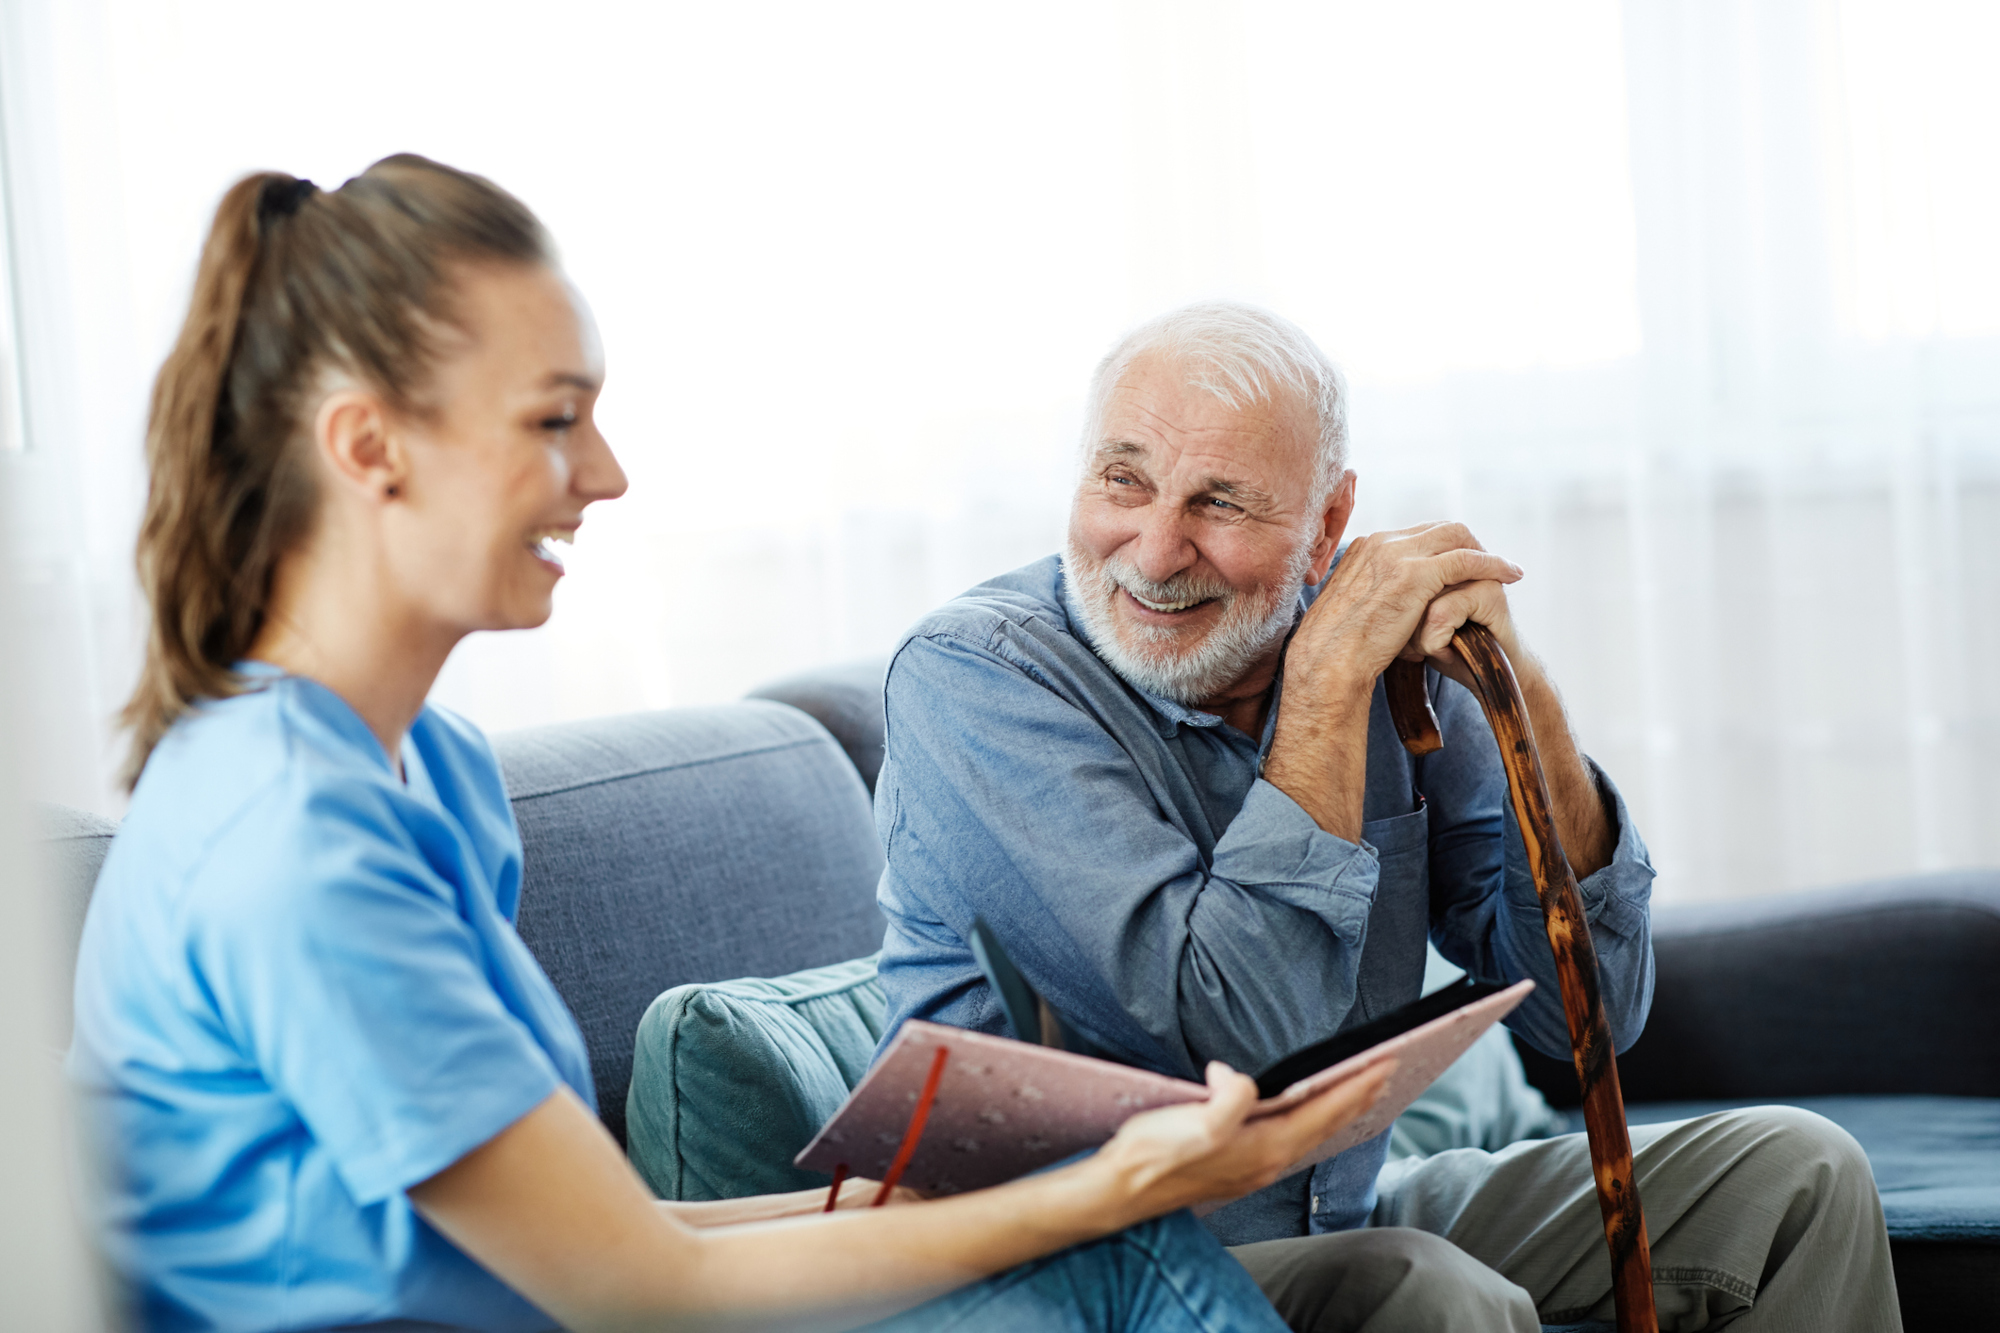 A new standard in care